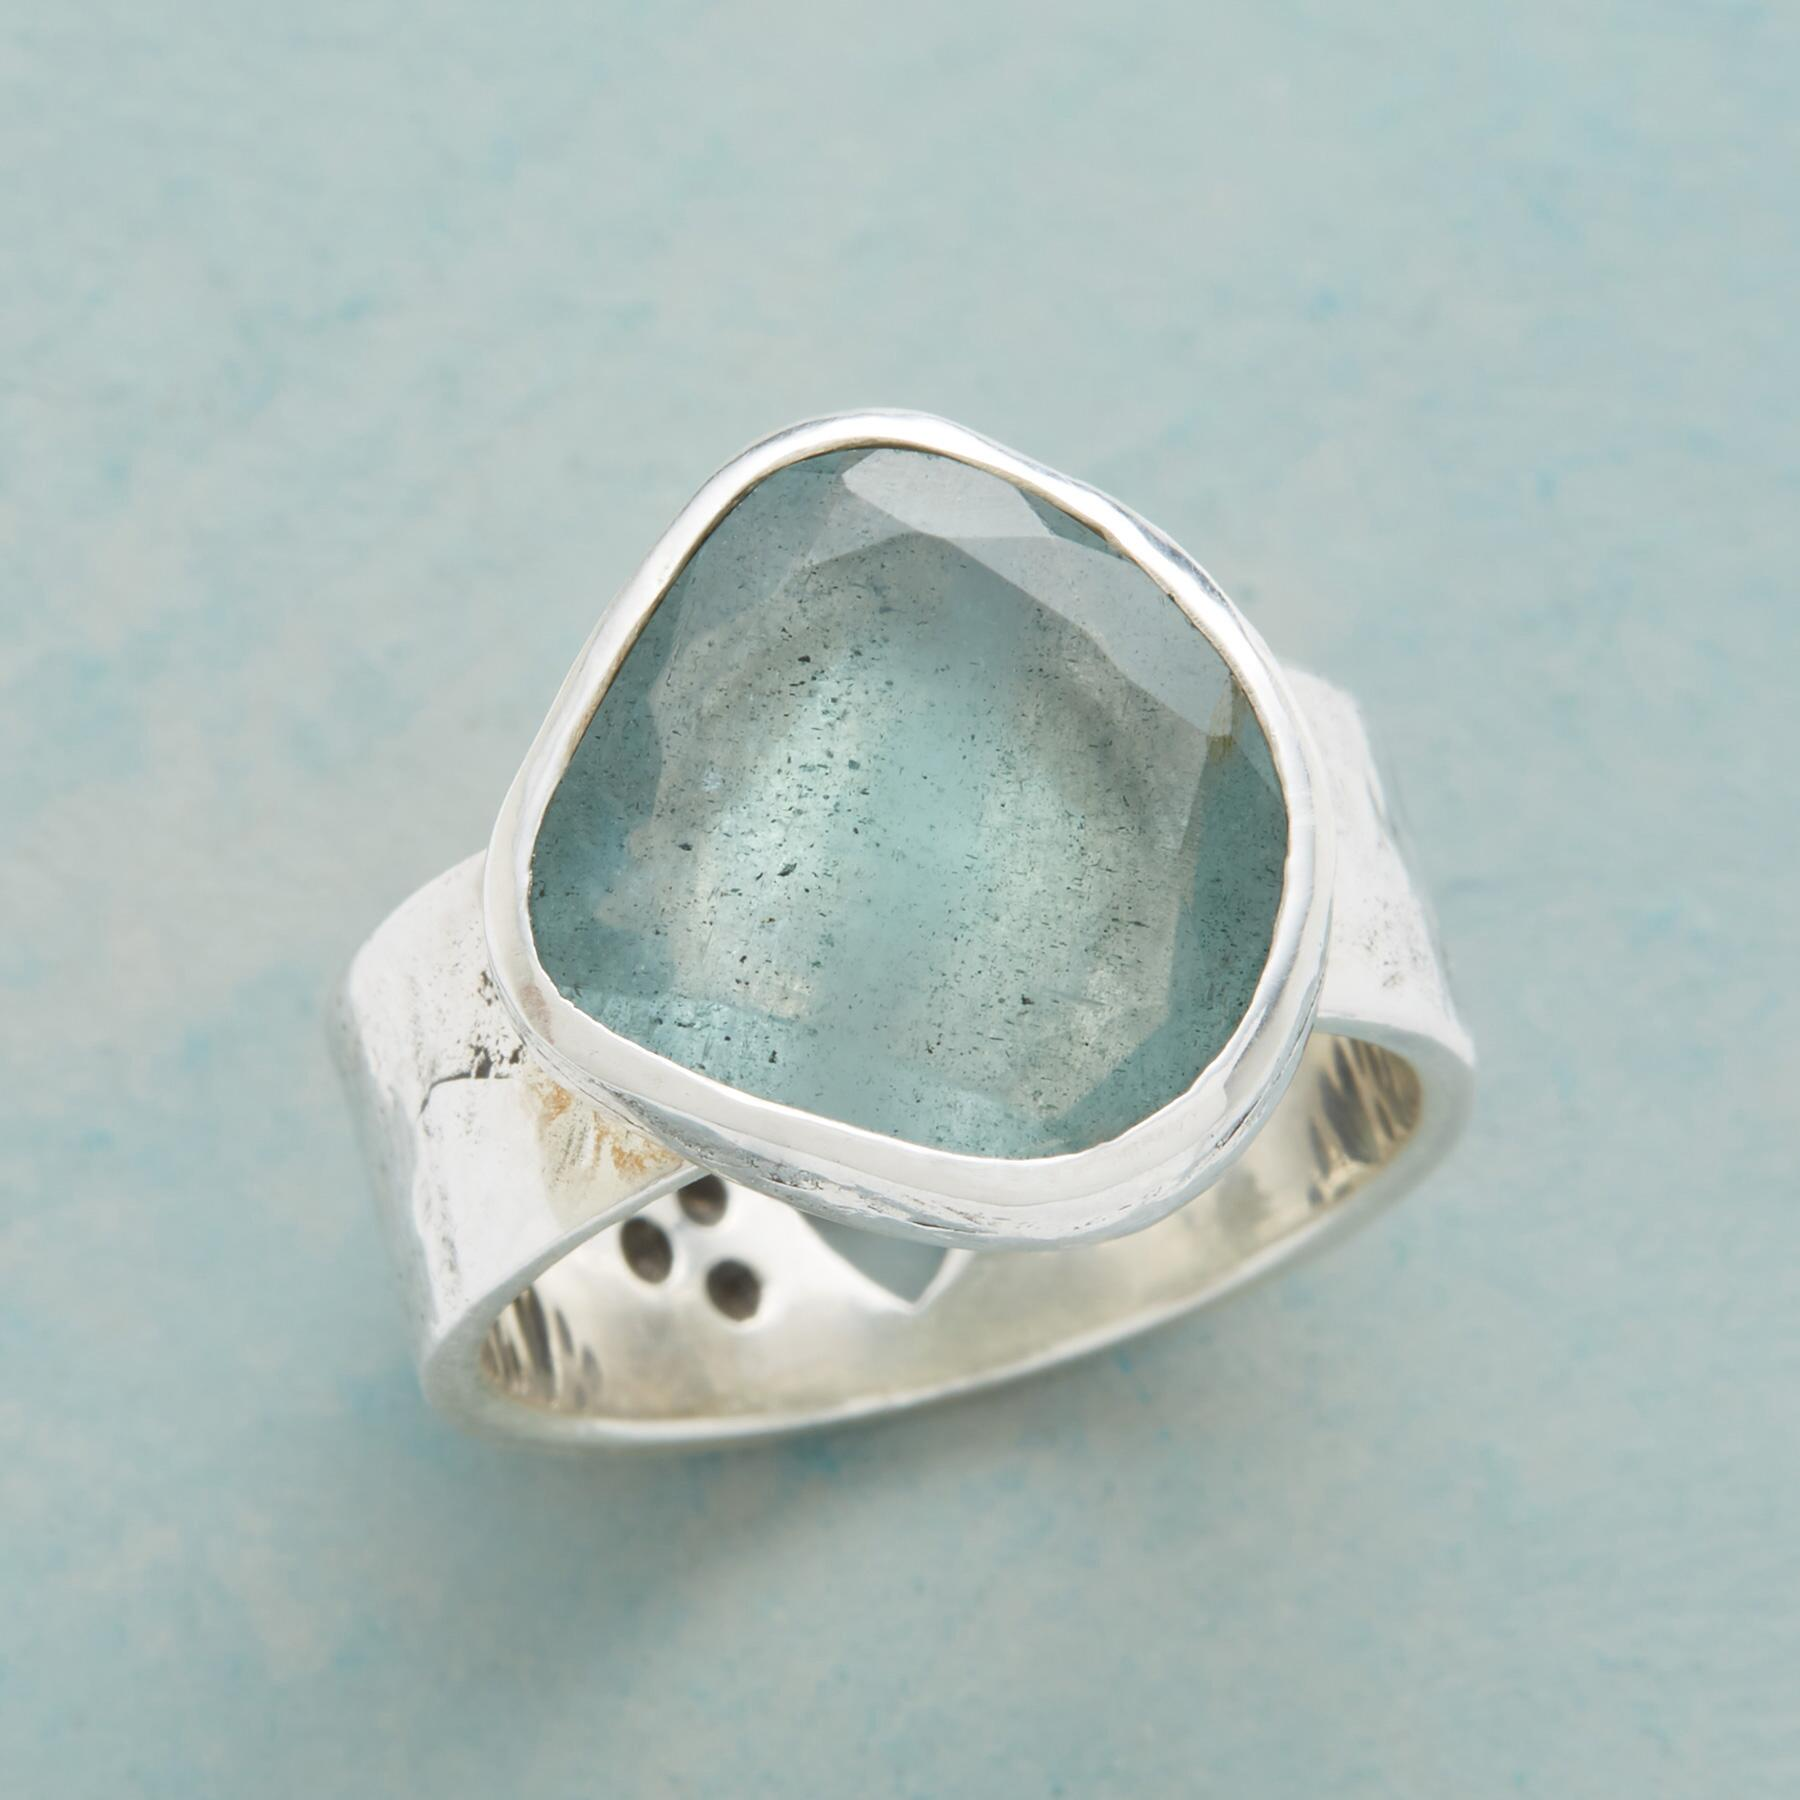 NATURE'S WAY RING: View 1